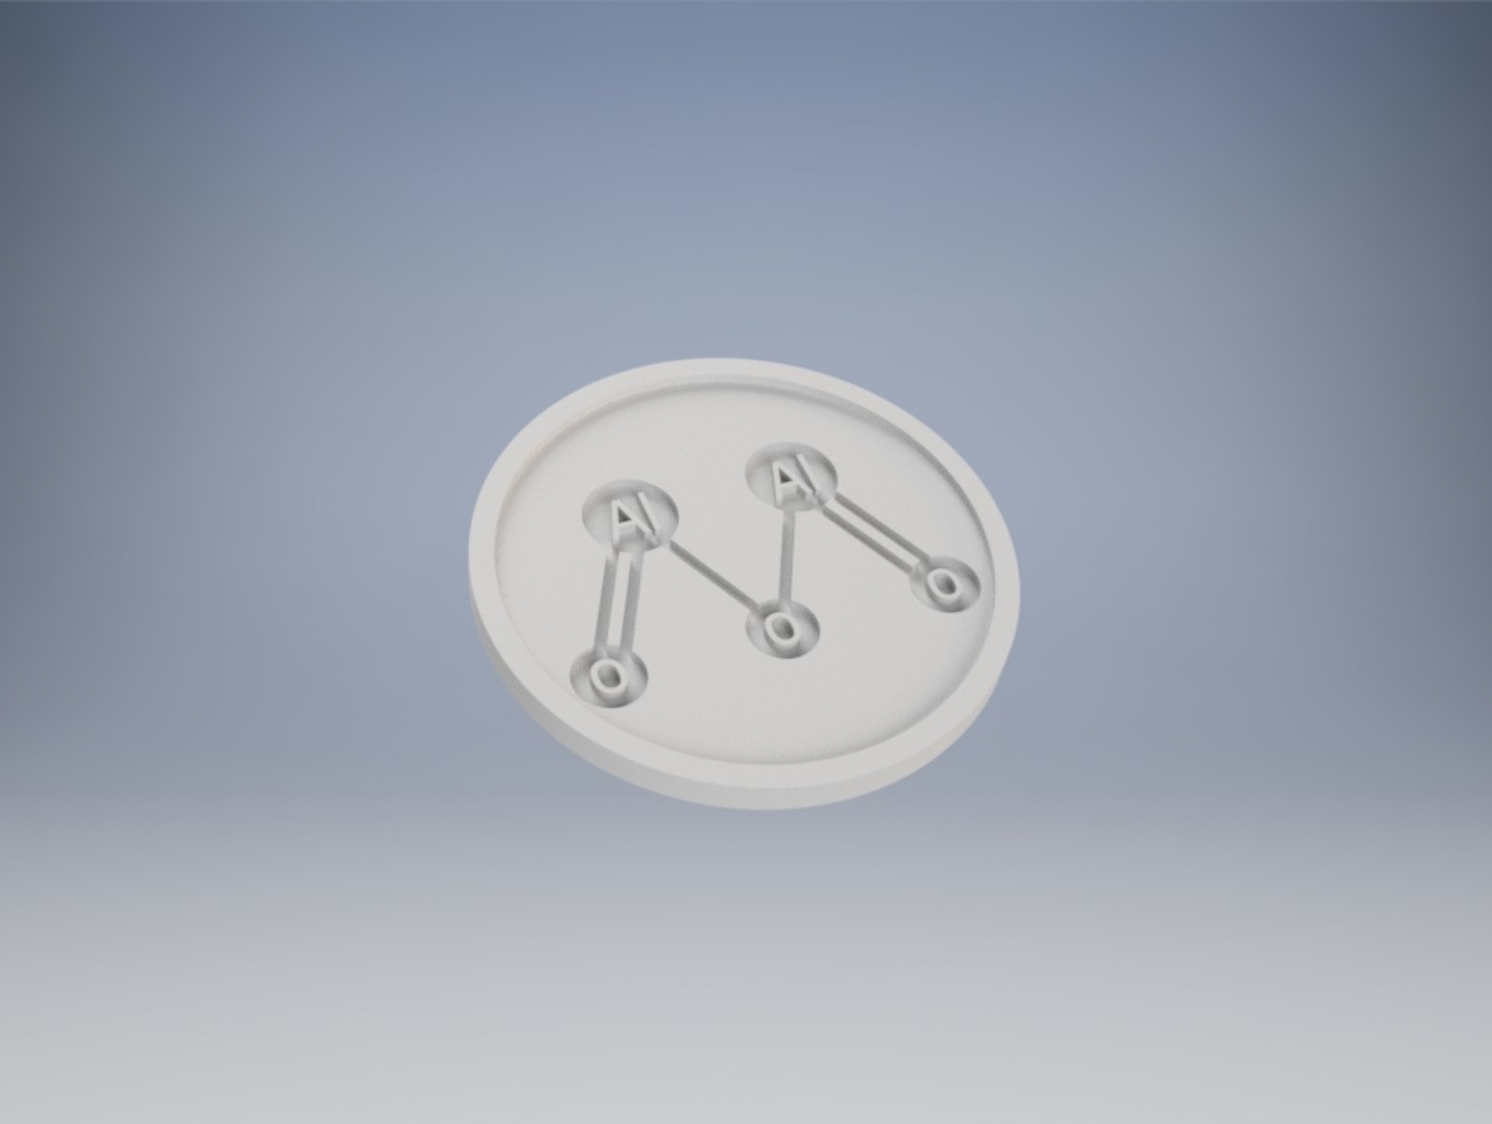 Capture d'écran 2017-11-06 à 14.25.05.png Download free STL file Alumina Coaster • Model to 3D print, milasls